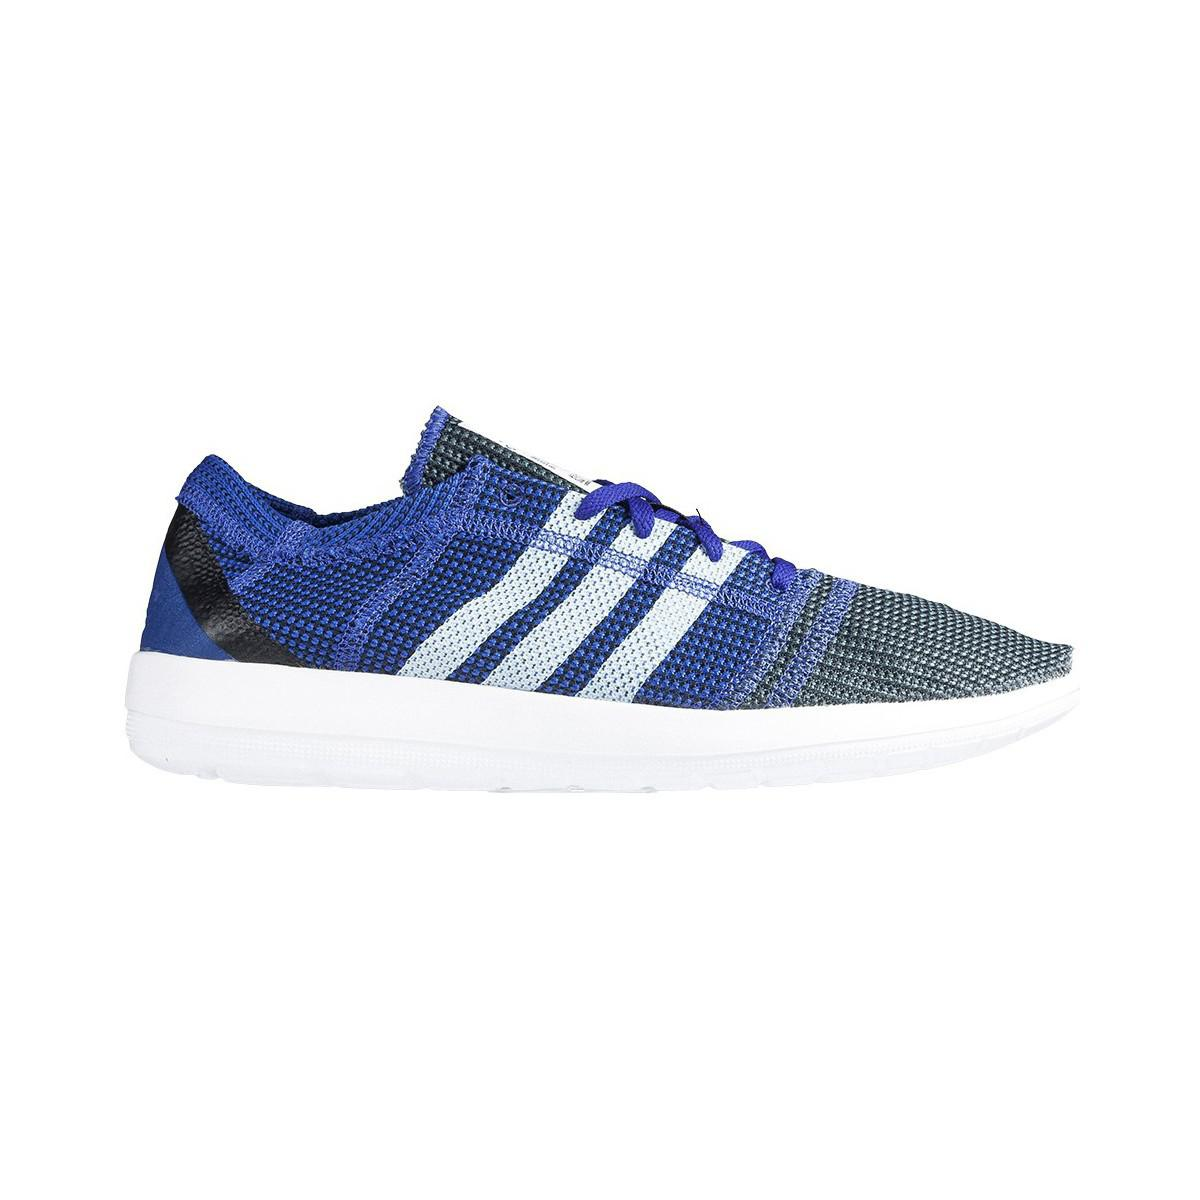 02a91551665 Adidas Element Refine Tricot Men s Running Trainers In White in ...